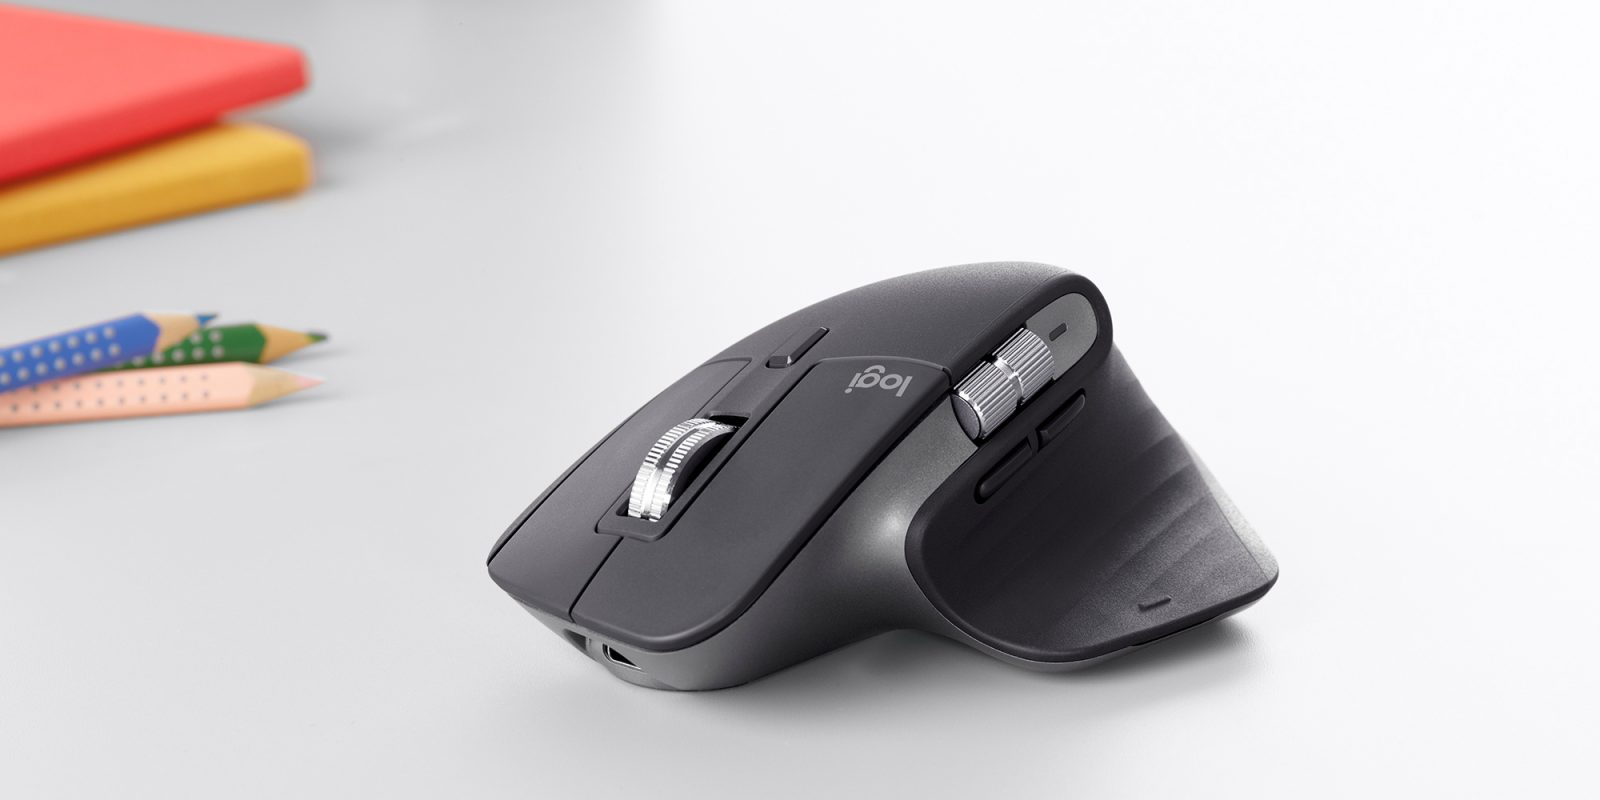 Logitech MX Master 3 Review - A Mouse with Futuristic